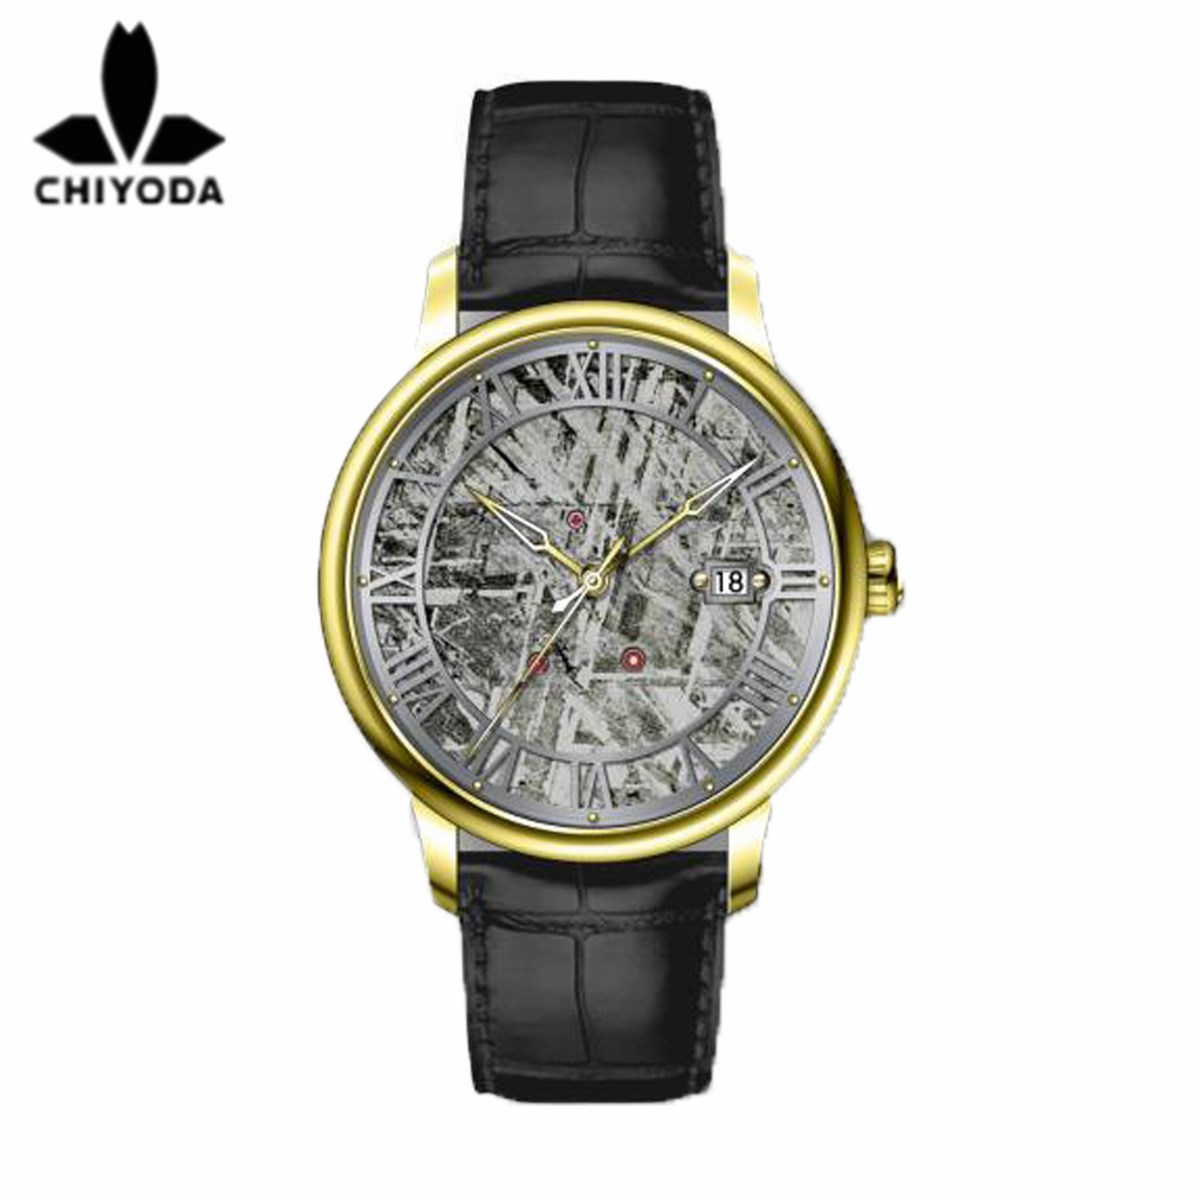 CHIYODA Mens Luxury Gold Automatic Watch with Classical Meteorite Dial Swiss Movement Leather Strap Meteorite 01